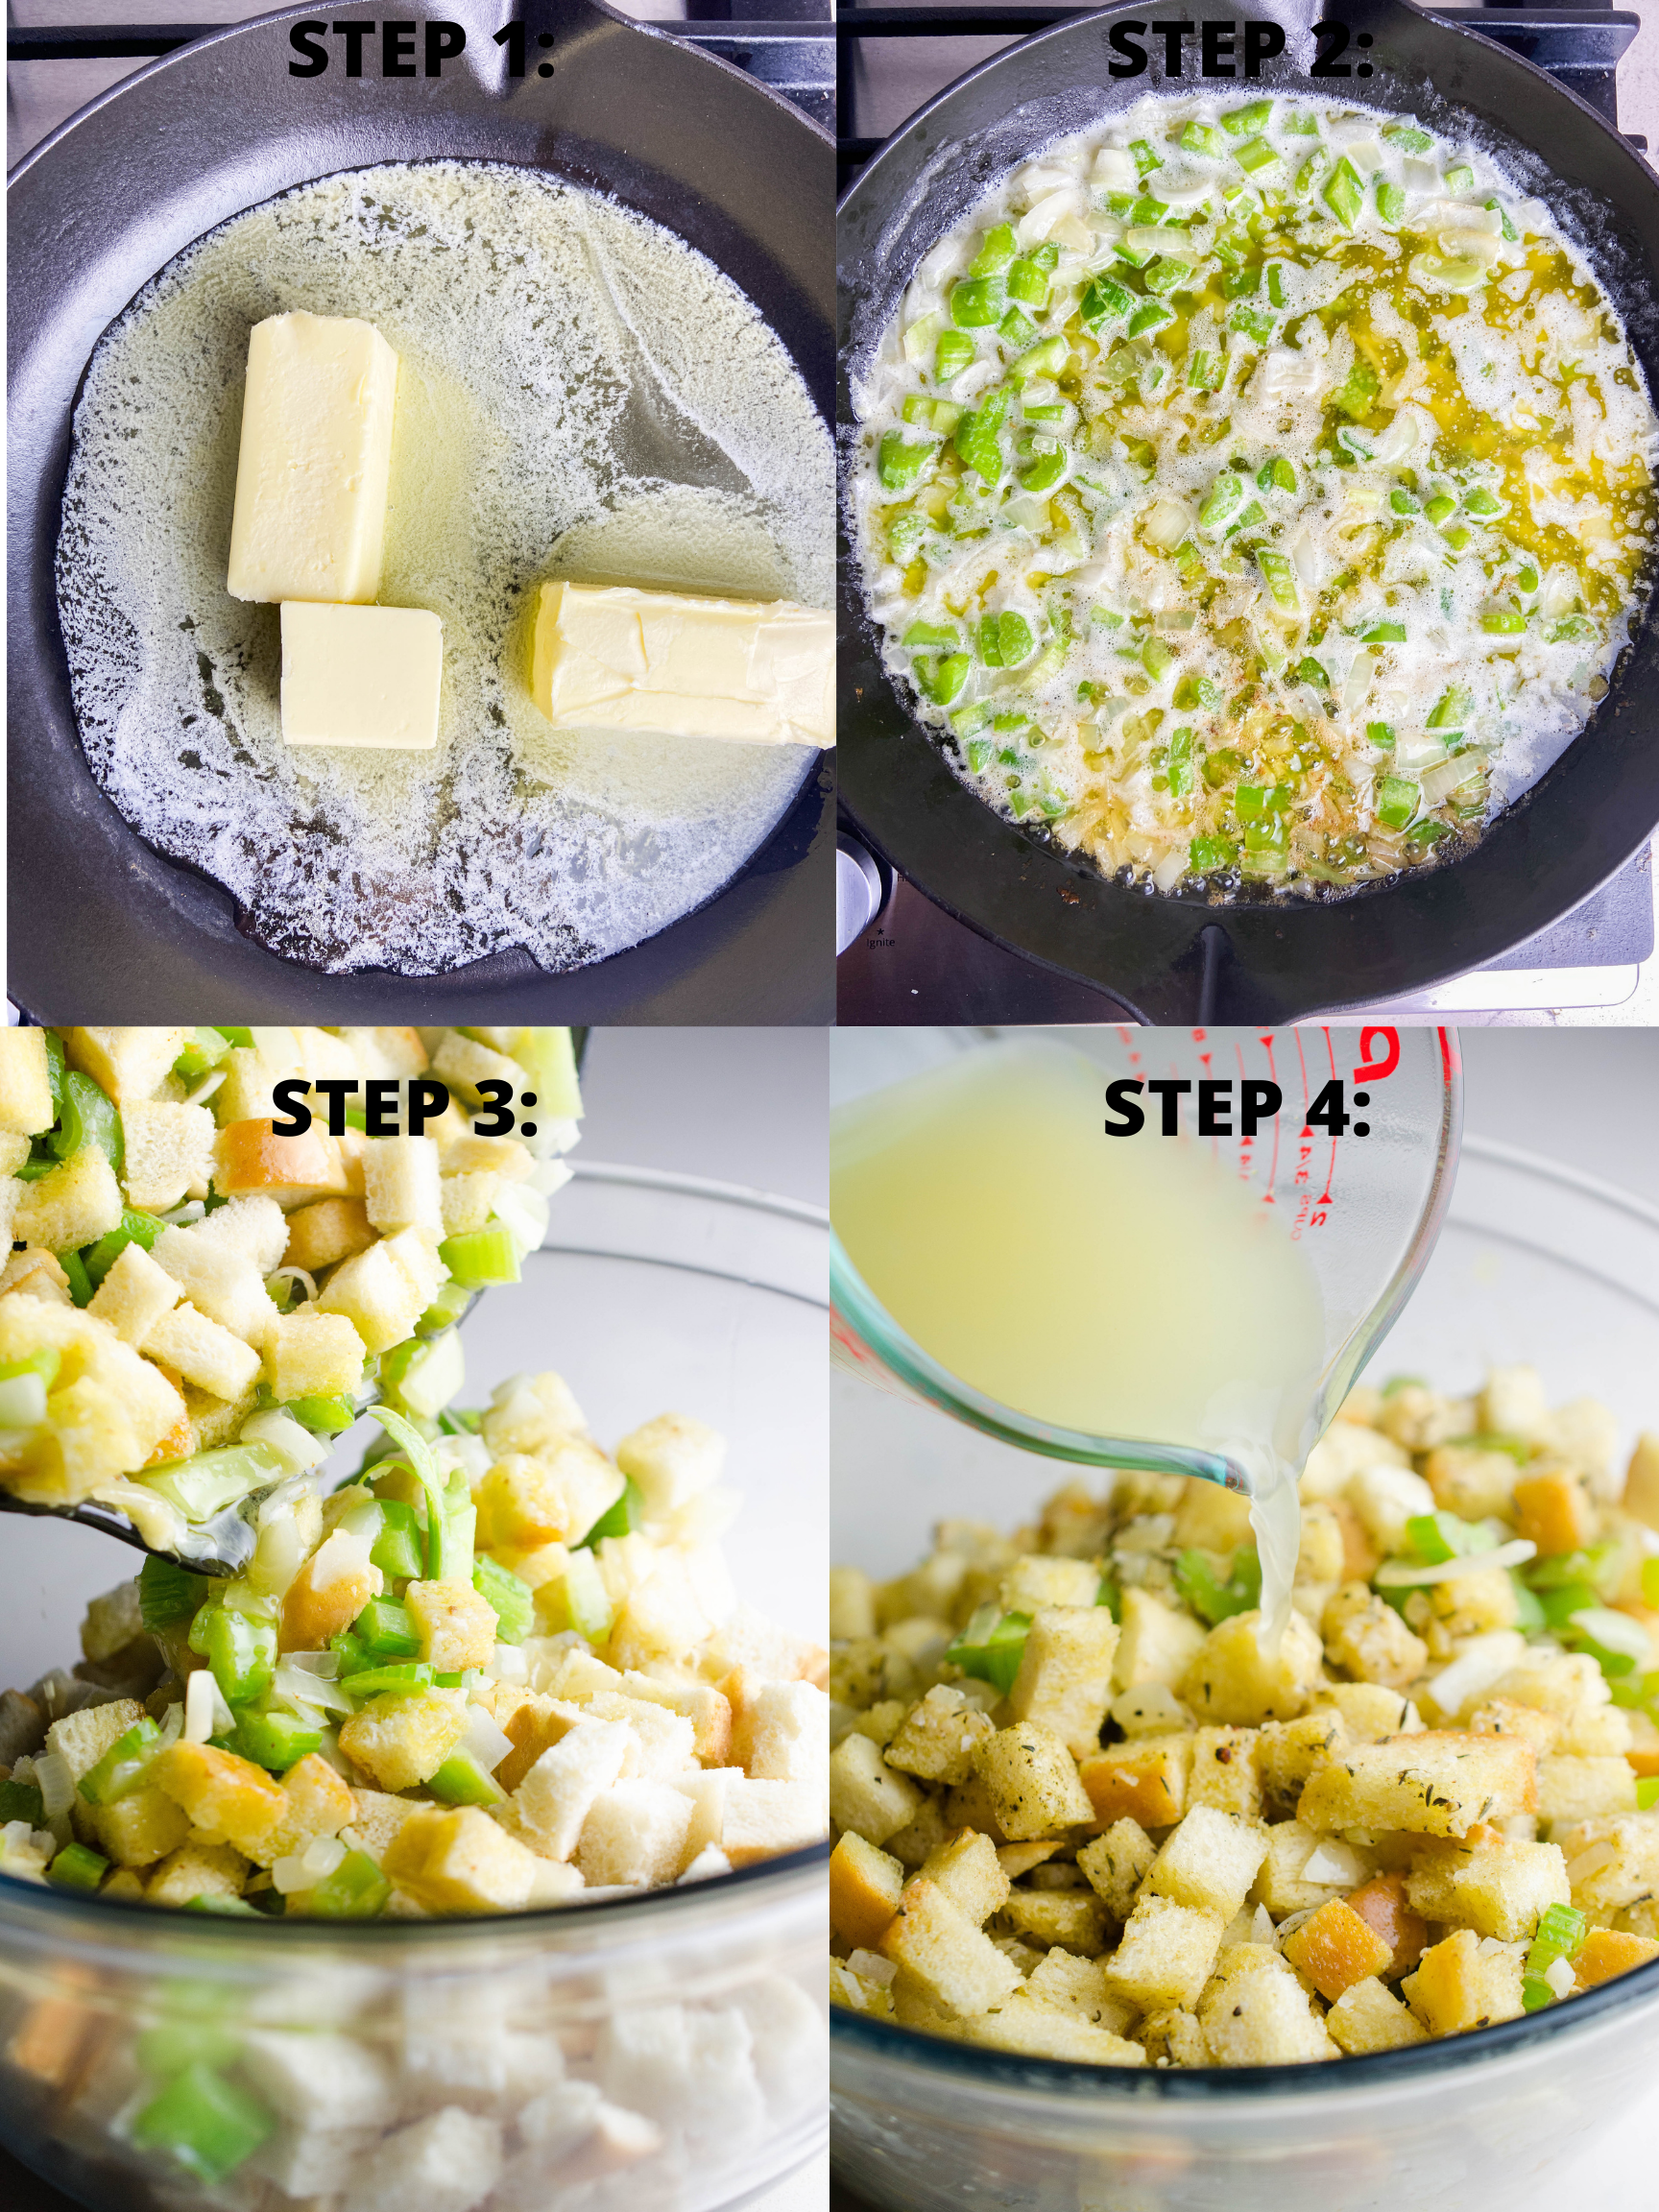 Step by step photos of stuffing.